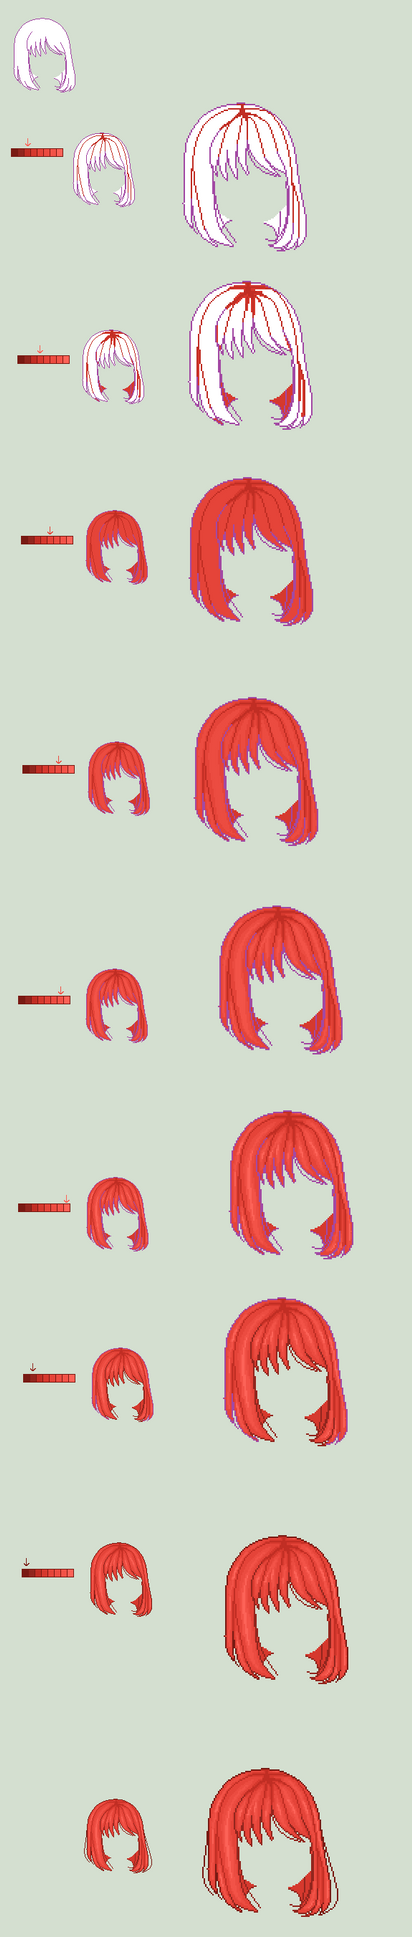 Snazzy Tutorials: Hair by moomoonya1